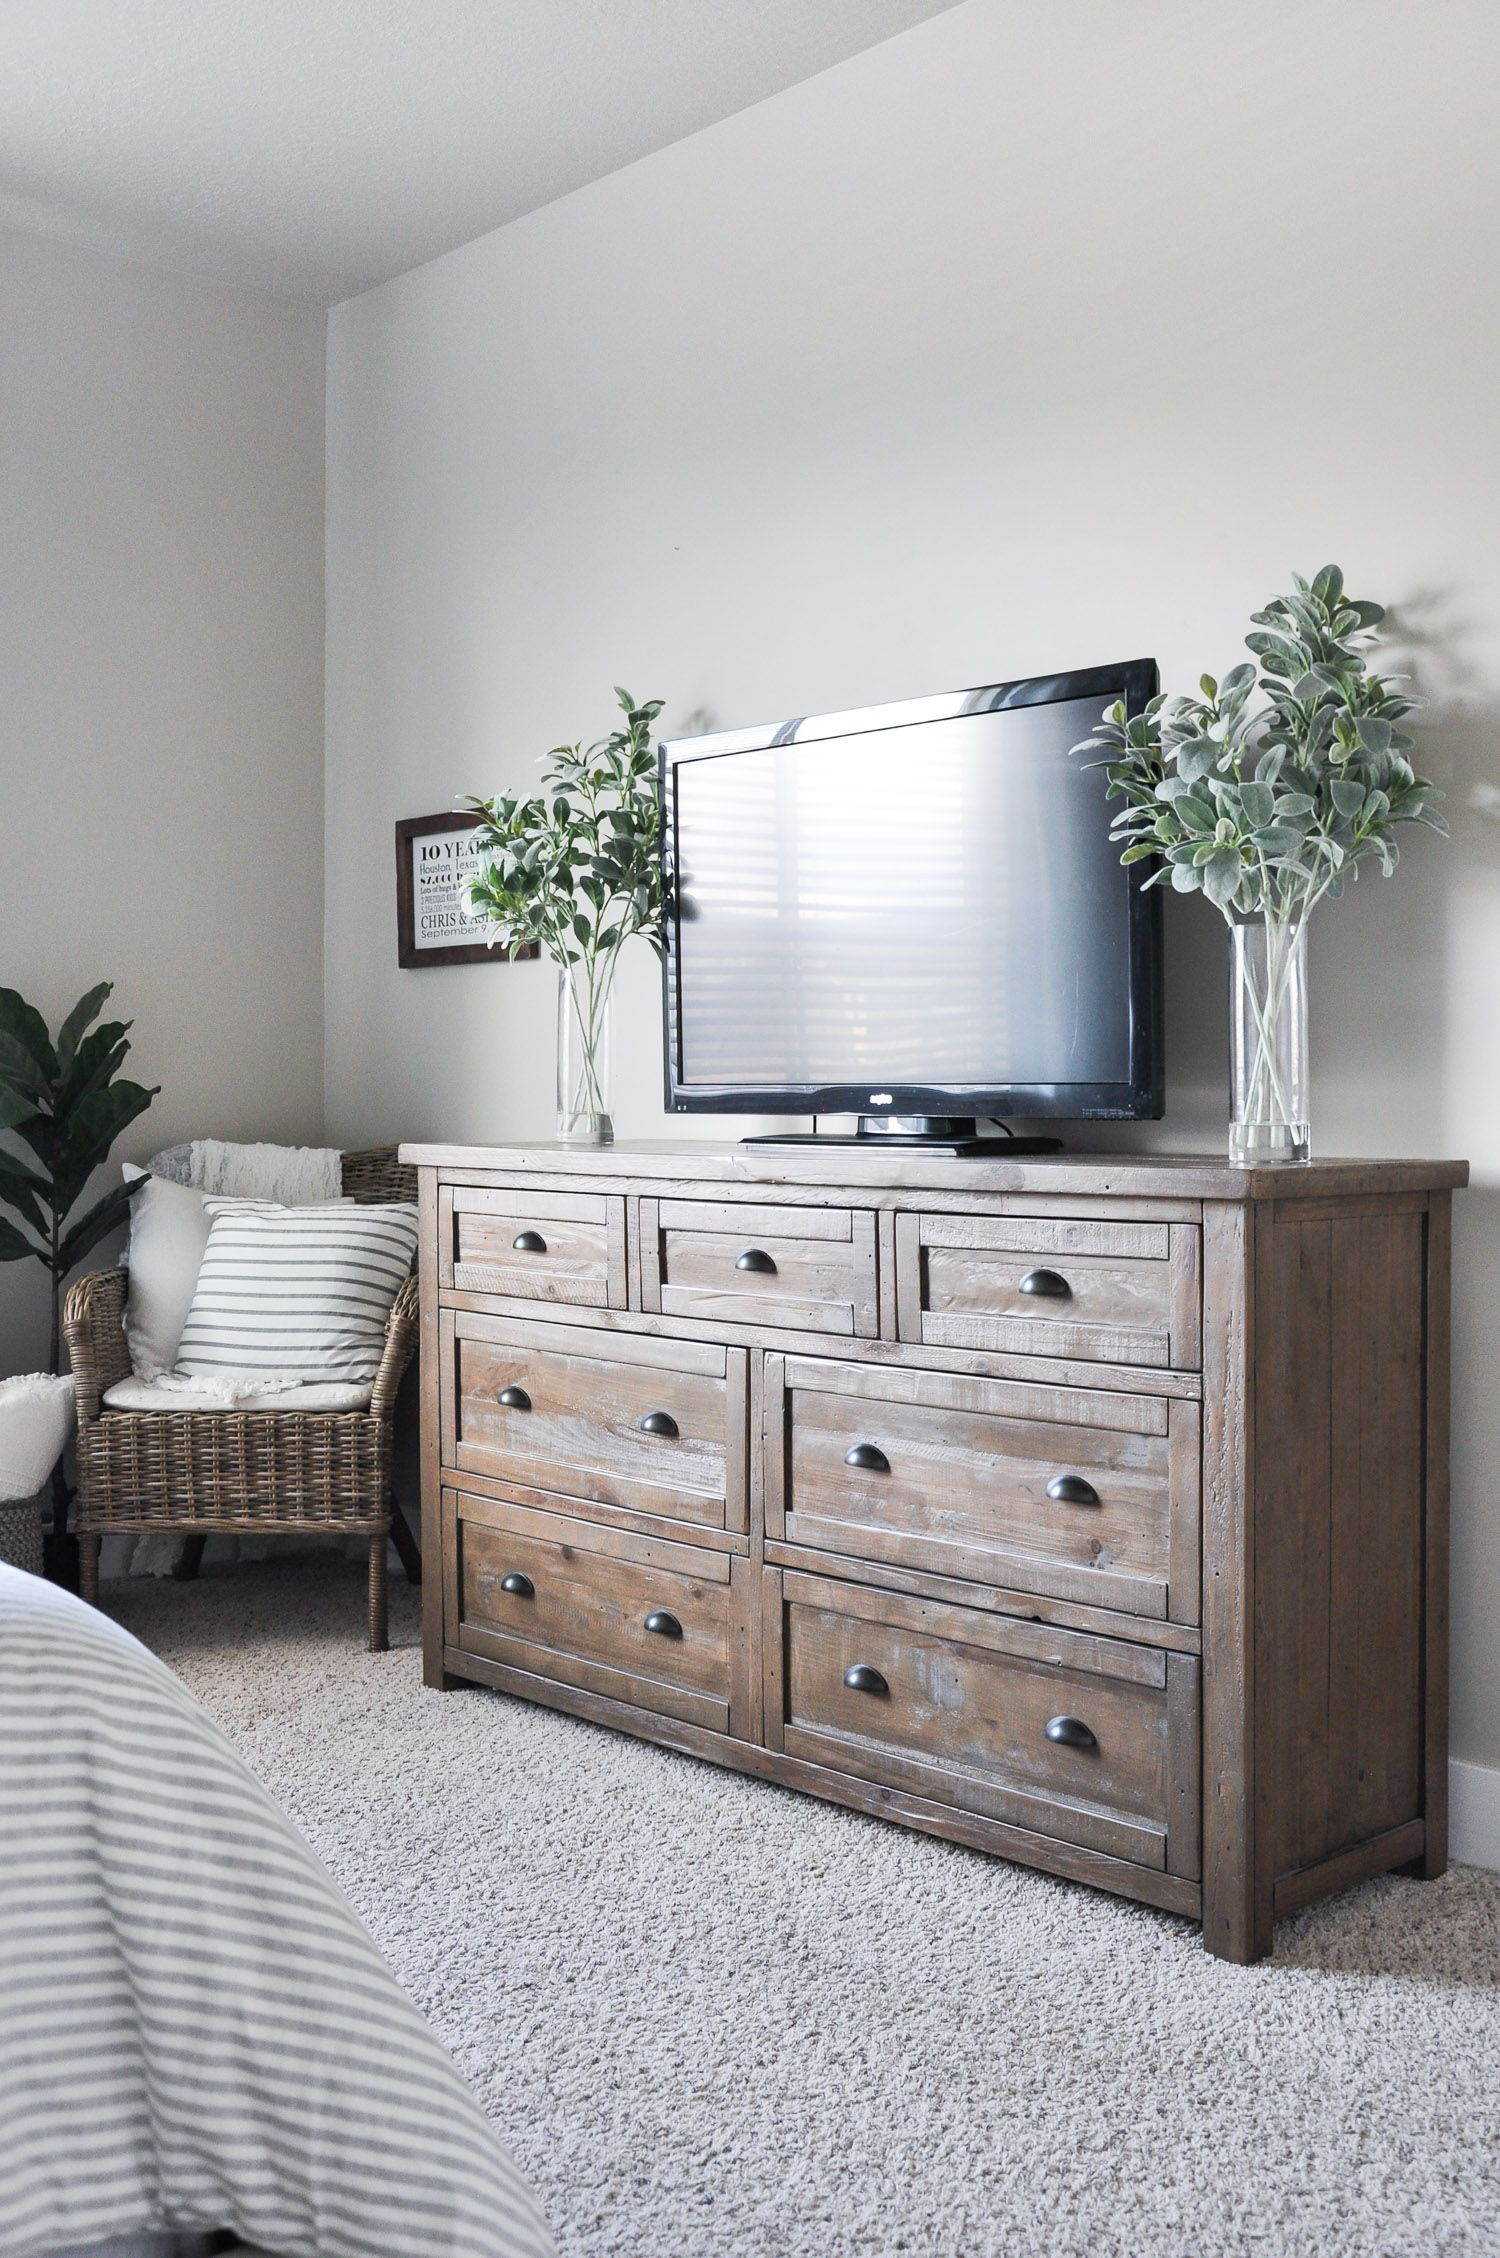 Create A Beautiful Modern Farmhouse Master Bedroom By Combining Items From Few Diffe Styles To